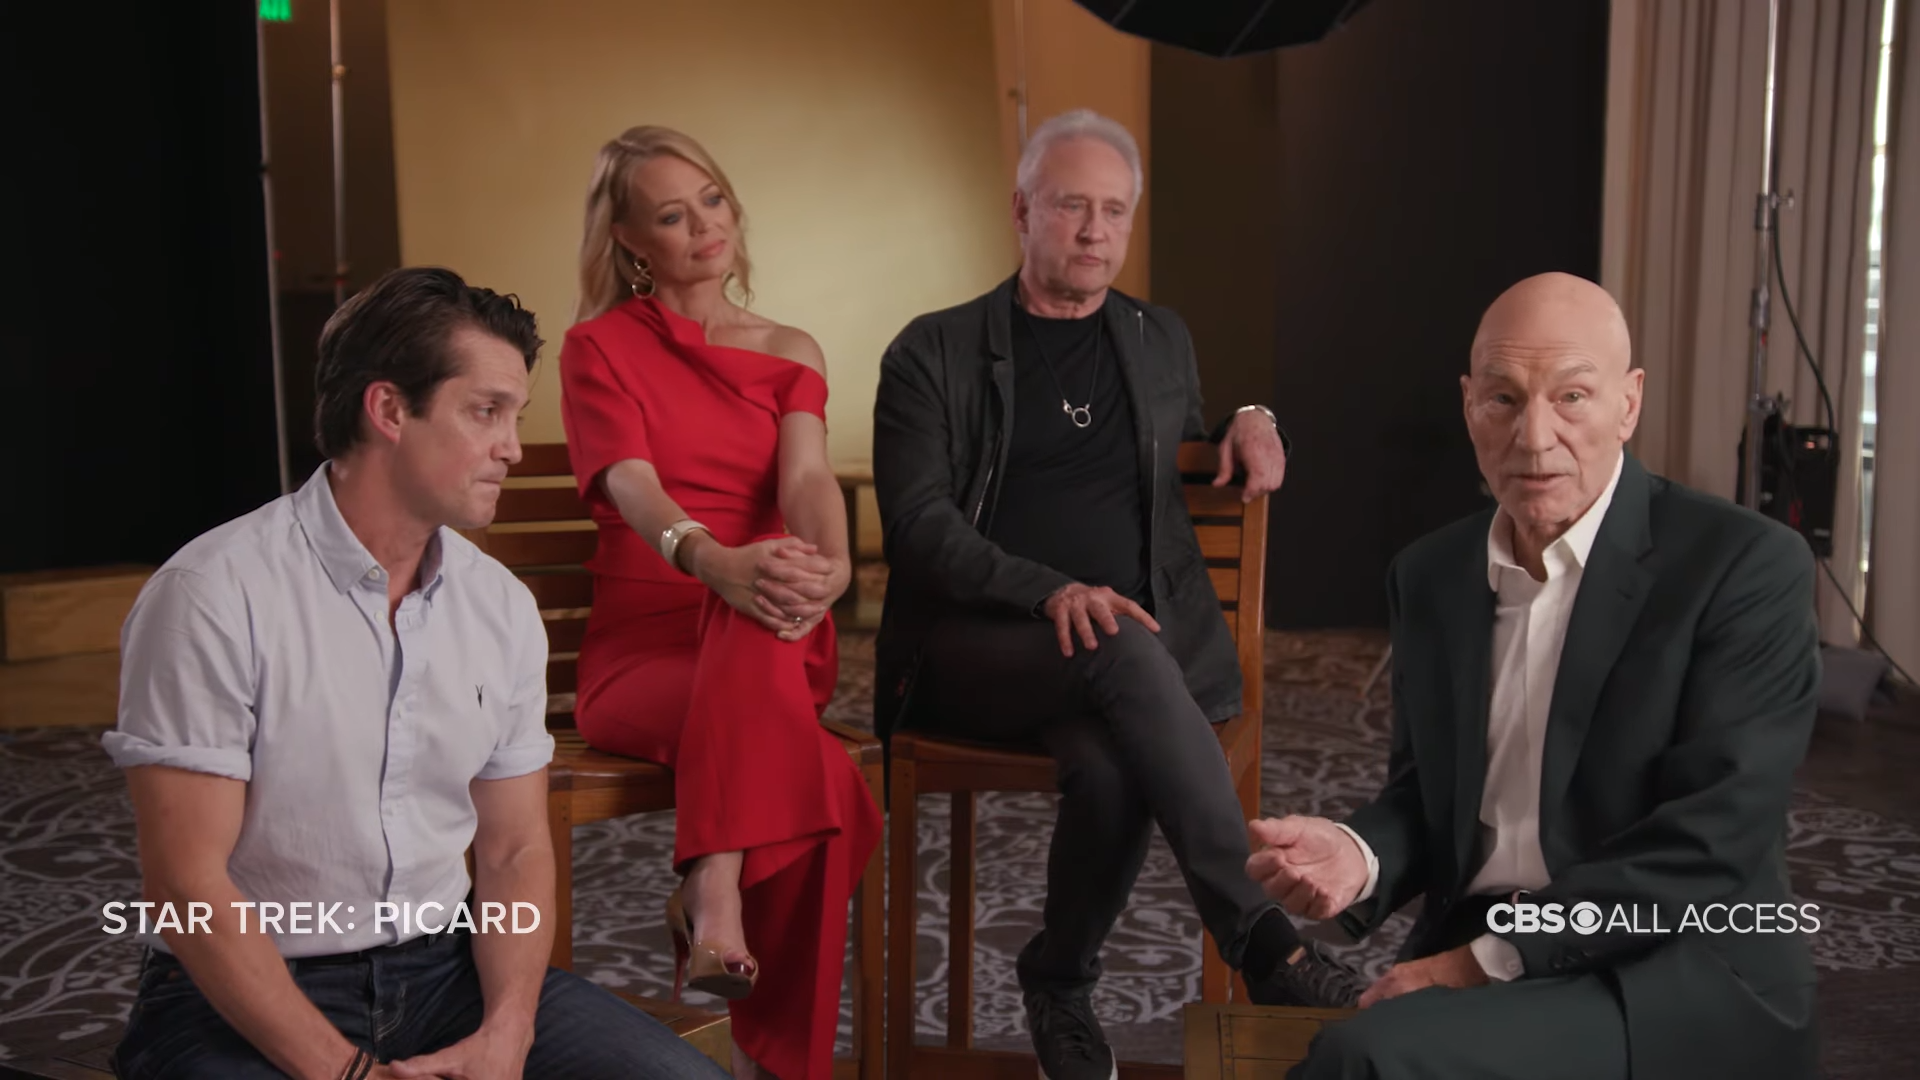 'Star Trek: Picard' Actors